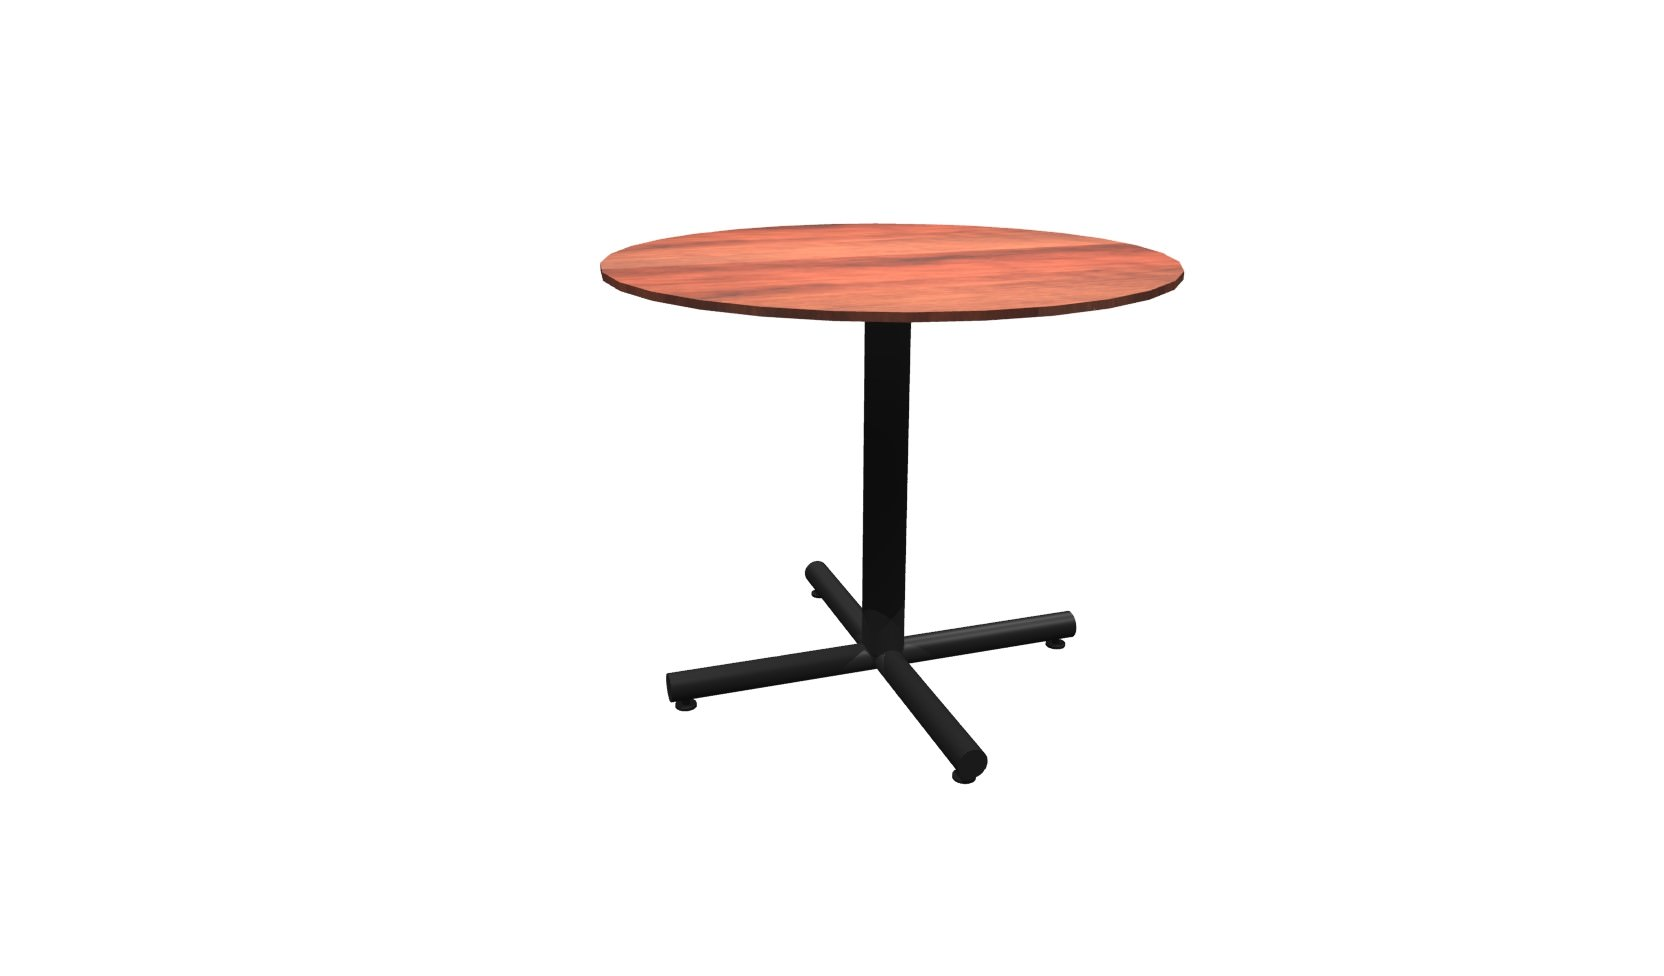 Inch Round Conference Table Cherry Black - 36 inch round conference table